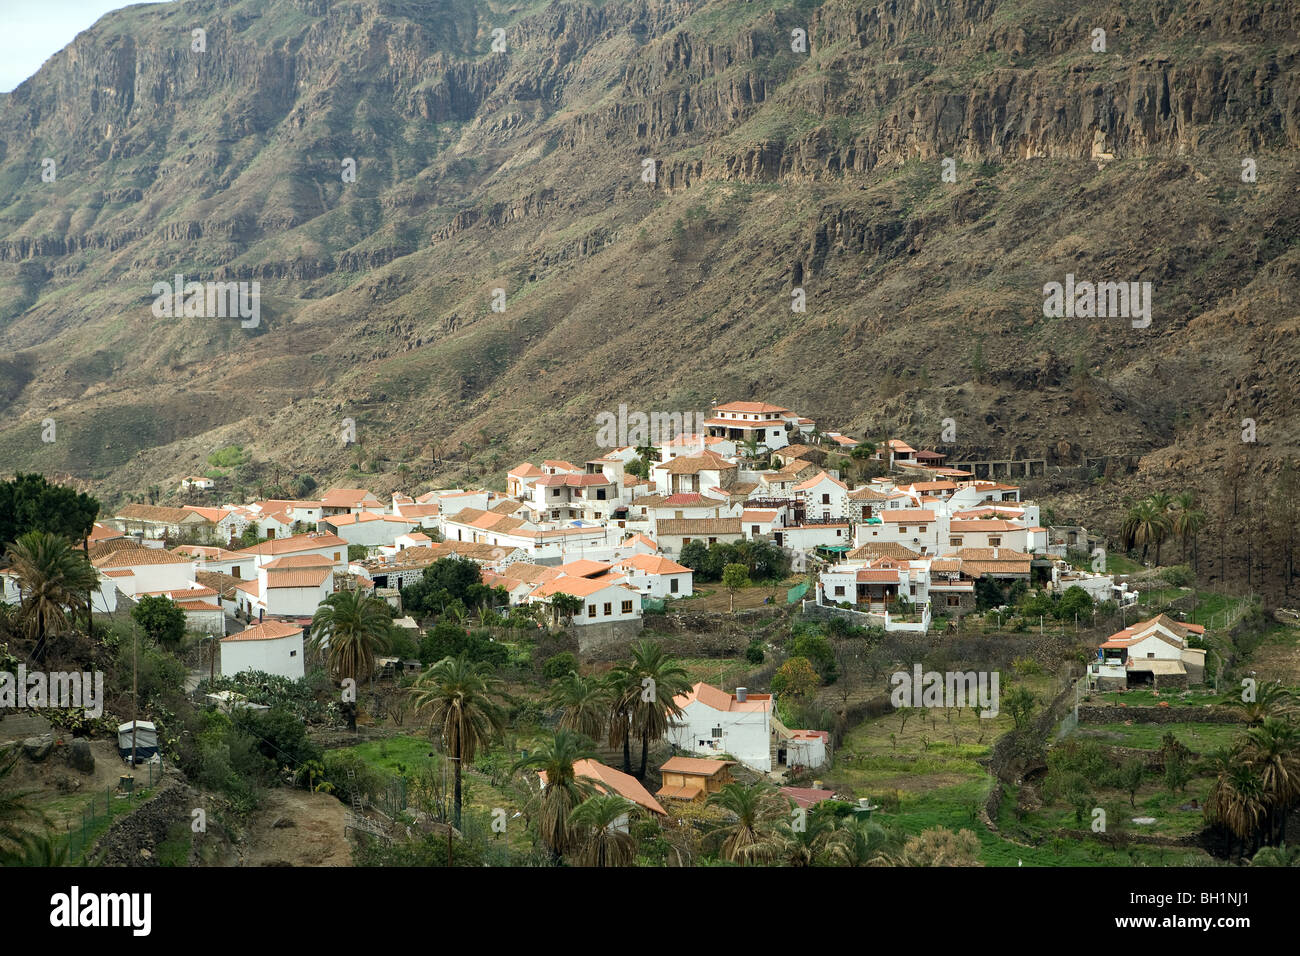 Europe, Spain, Canary Islands, Grand Carary, country, hinterland, mountain, - Stock Image